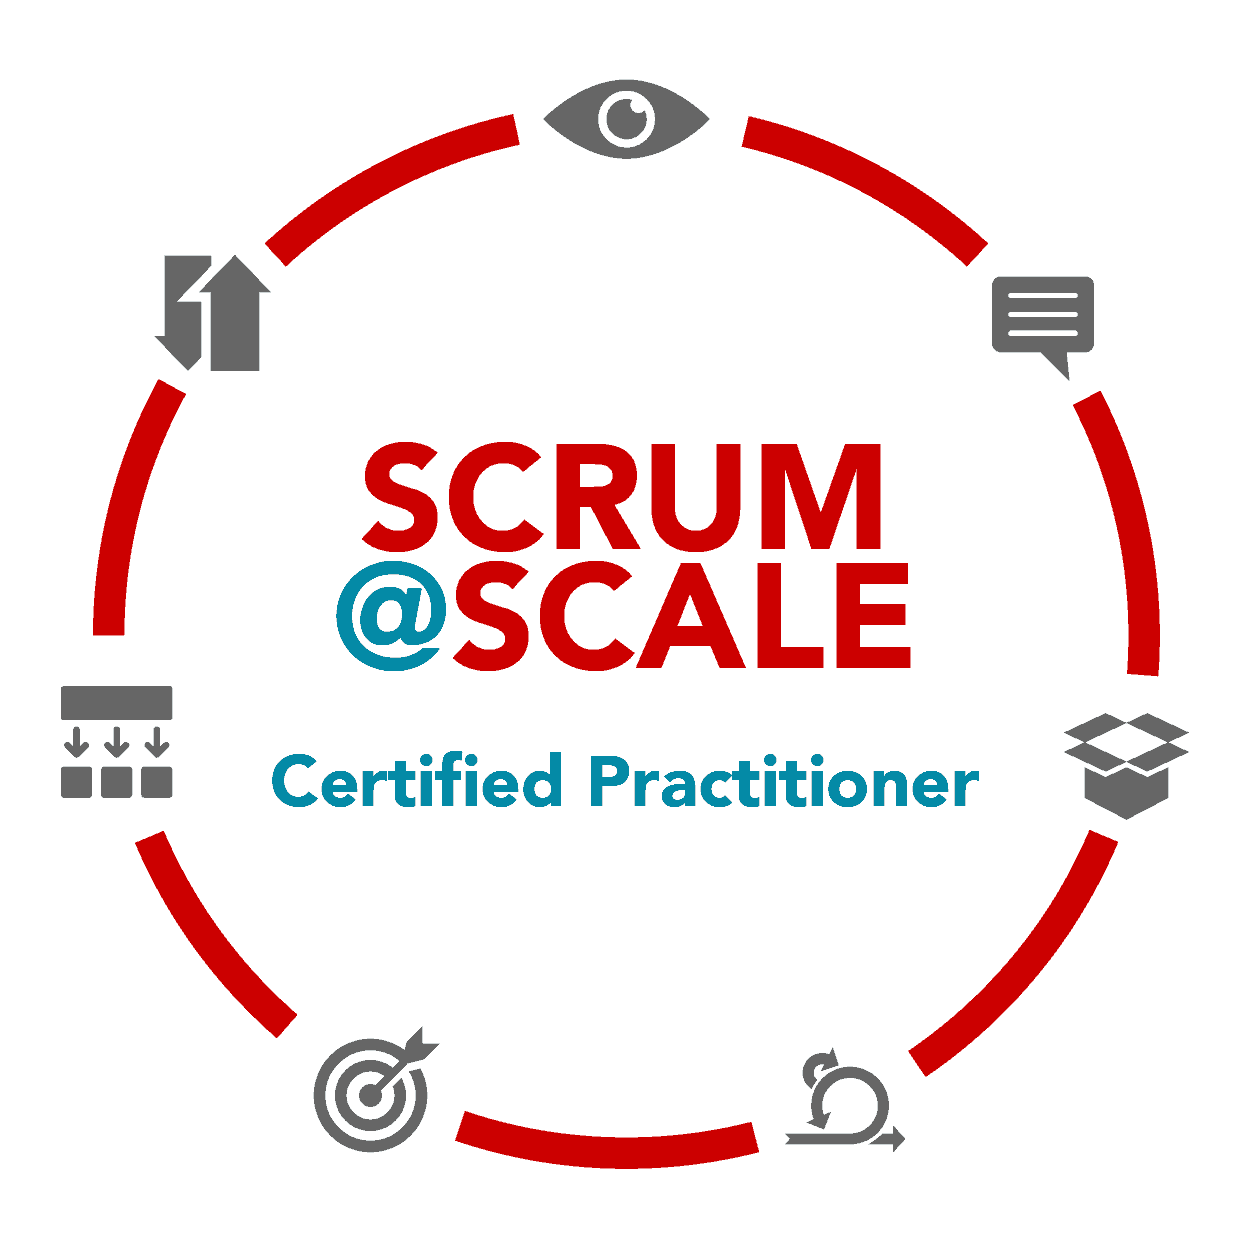 scrum at scale training, agile training